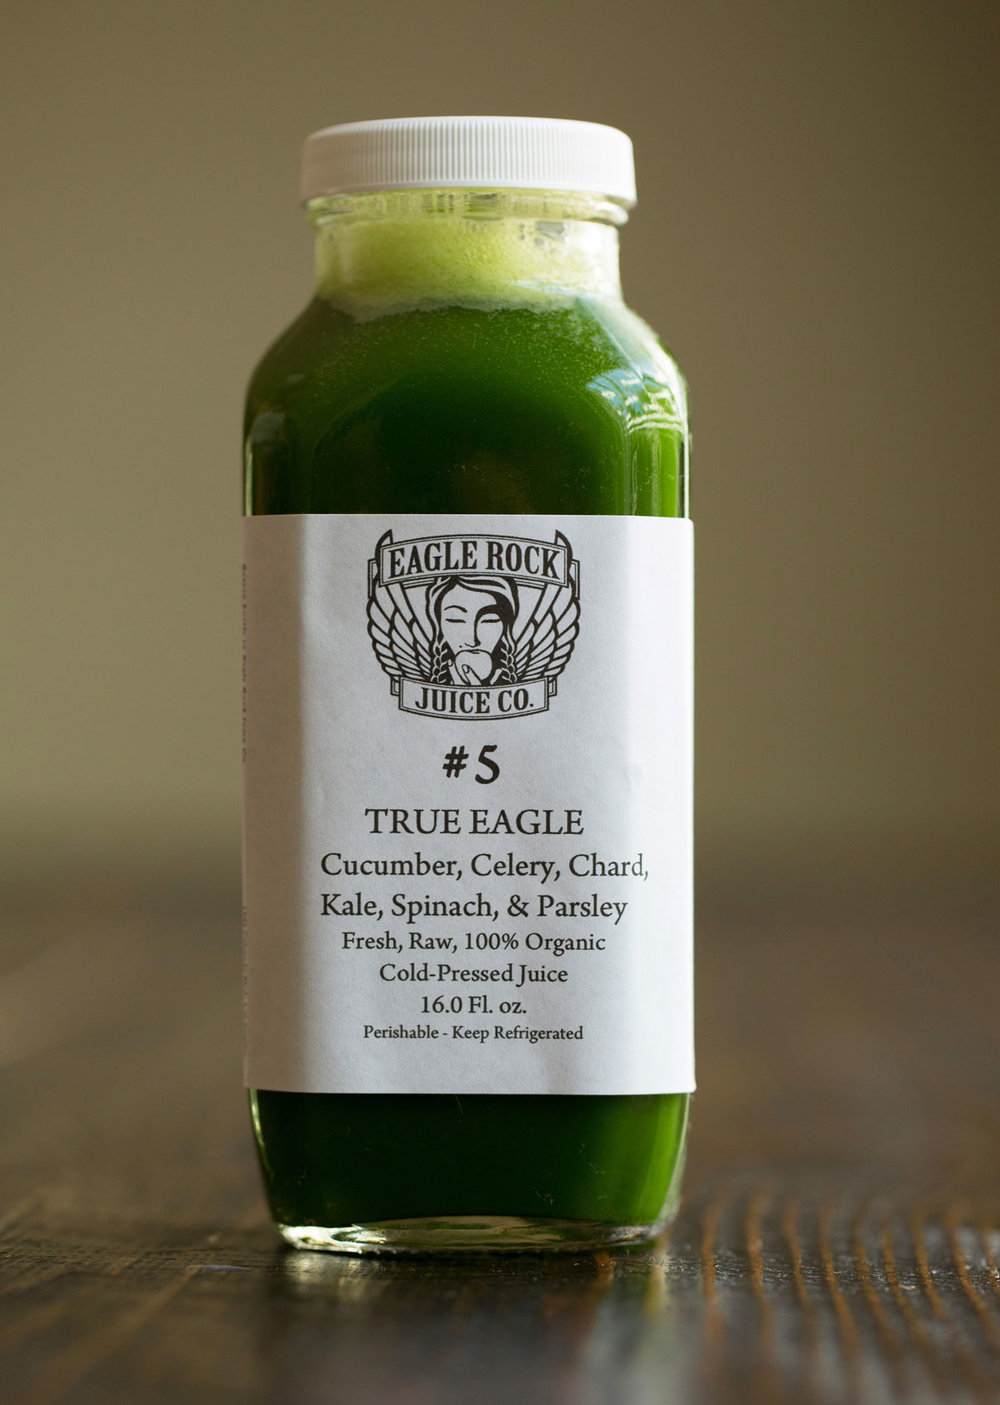 #5 True Eagle         $24.50/12.25/10.25 Cucumber, Celery, Kale, Chard, Spinach & Parsley